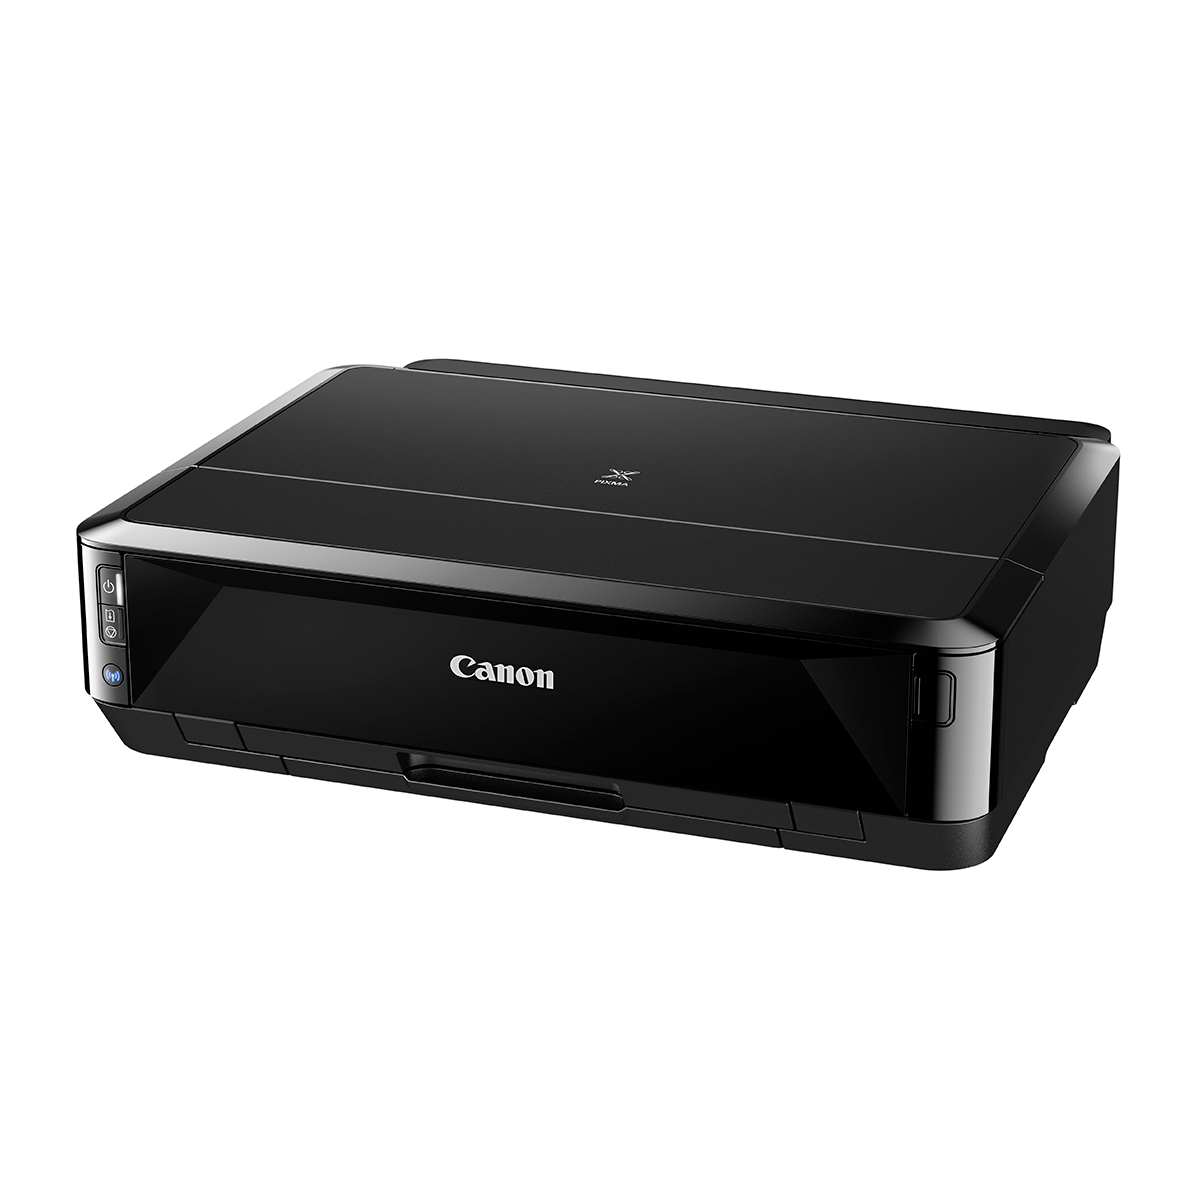 Canon PRO-1 A3 Pixma Inkjet Photo Printer